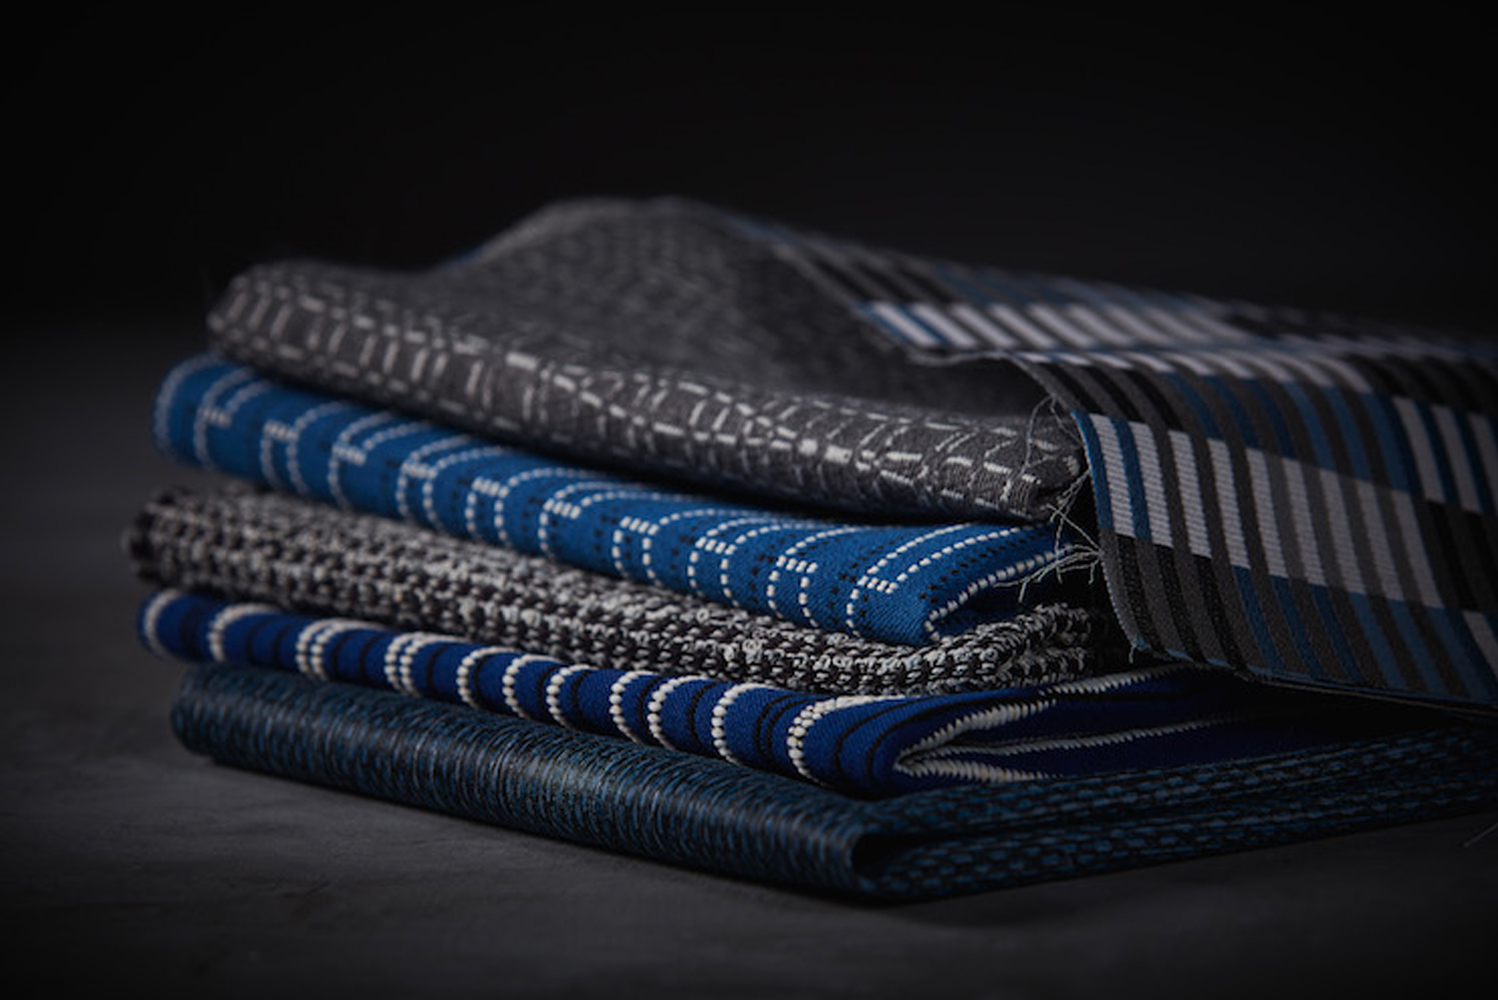 The collection includes Ethos, a geometric pattern inspired by Bauhaus; and Fuse, a linear ode to modernism.